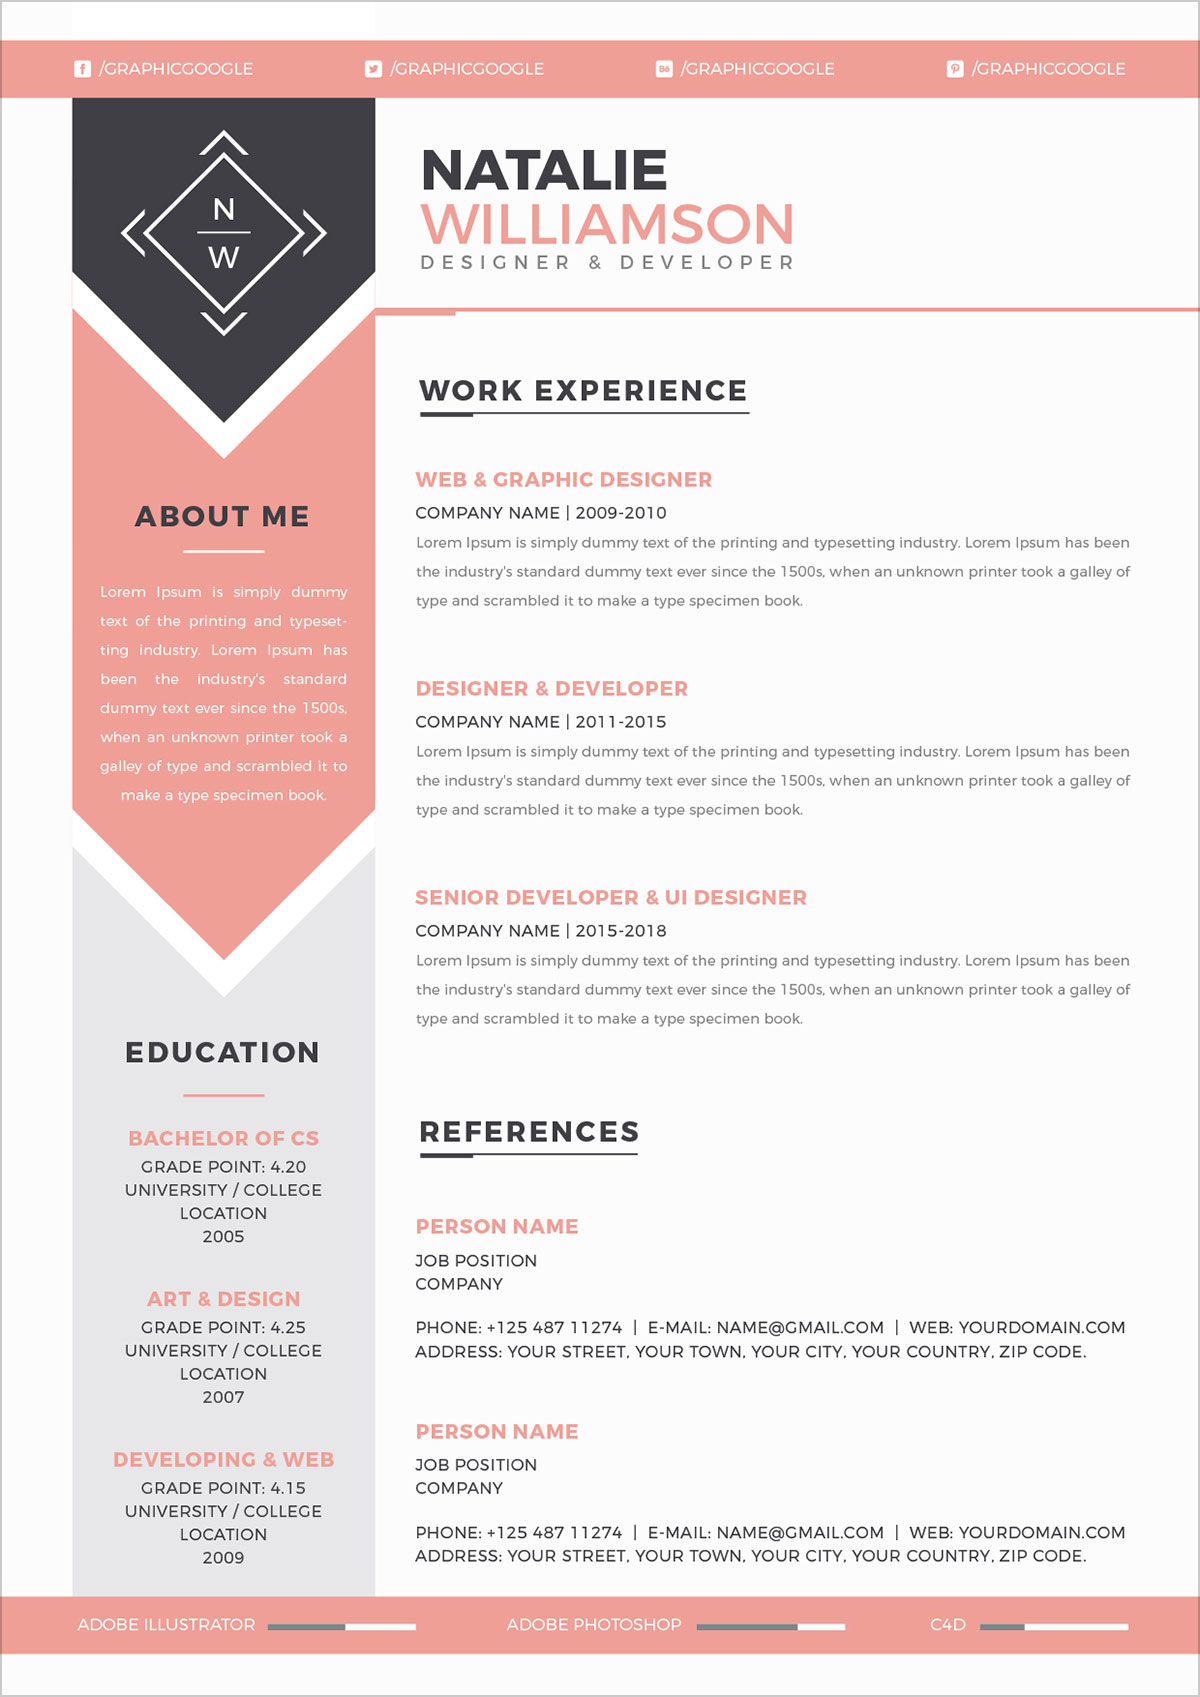 Free Modern Resume CV Template Cover Letter In Ai Format For Designers And Developers